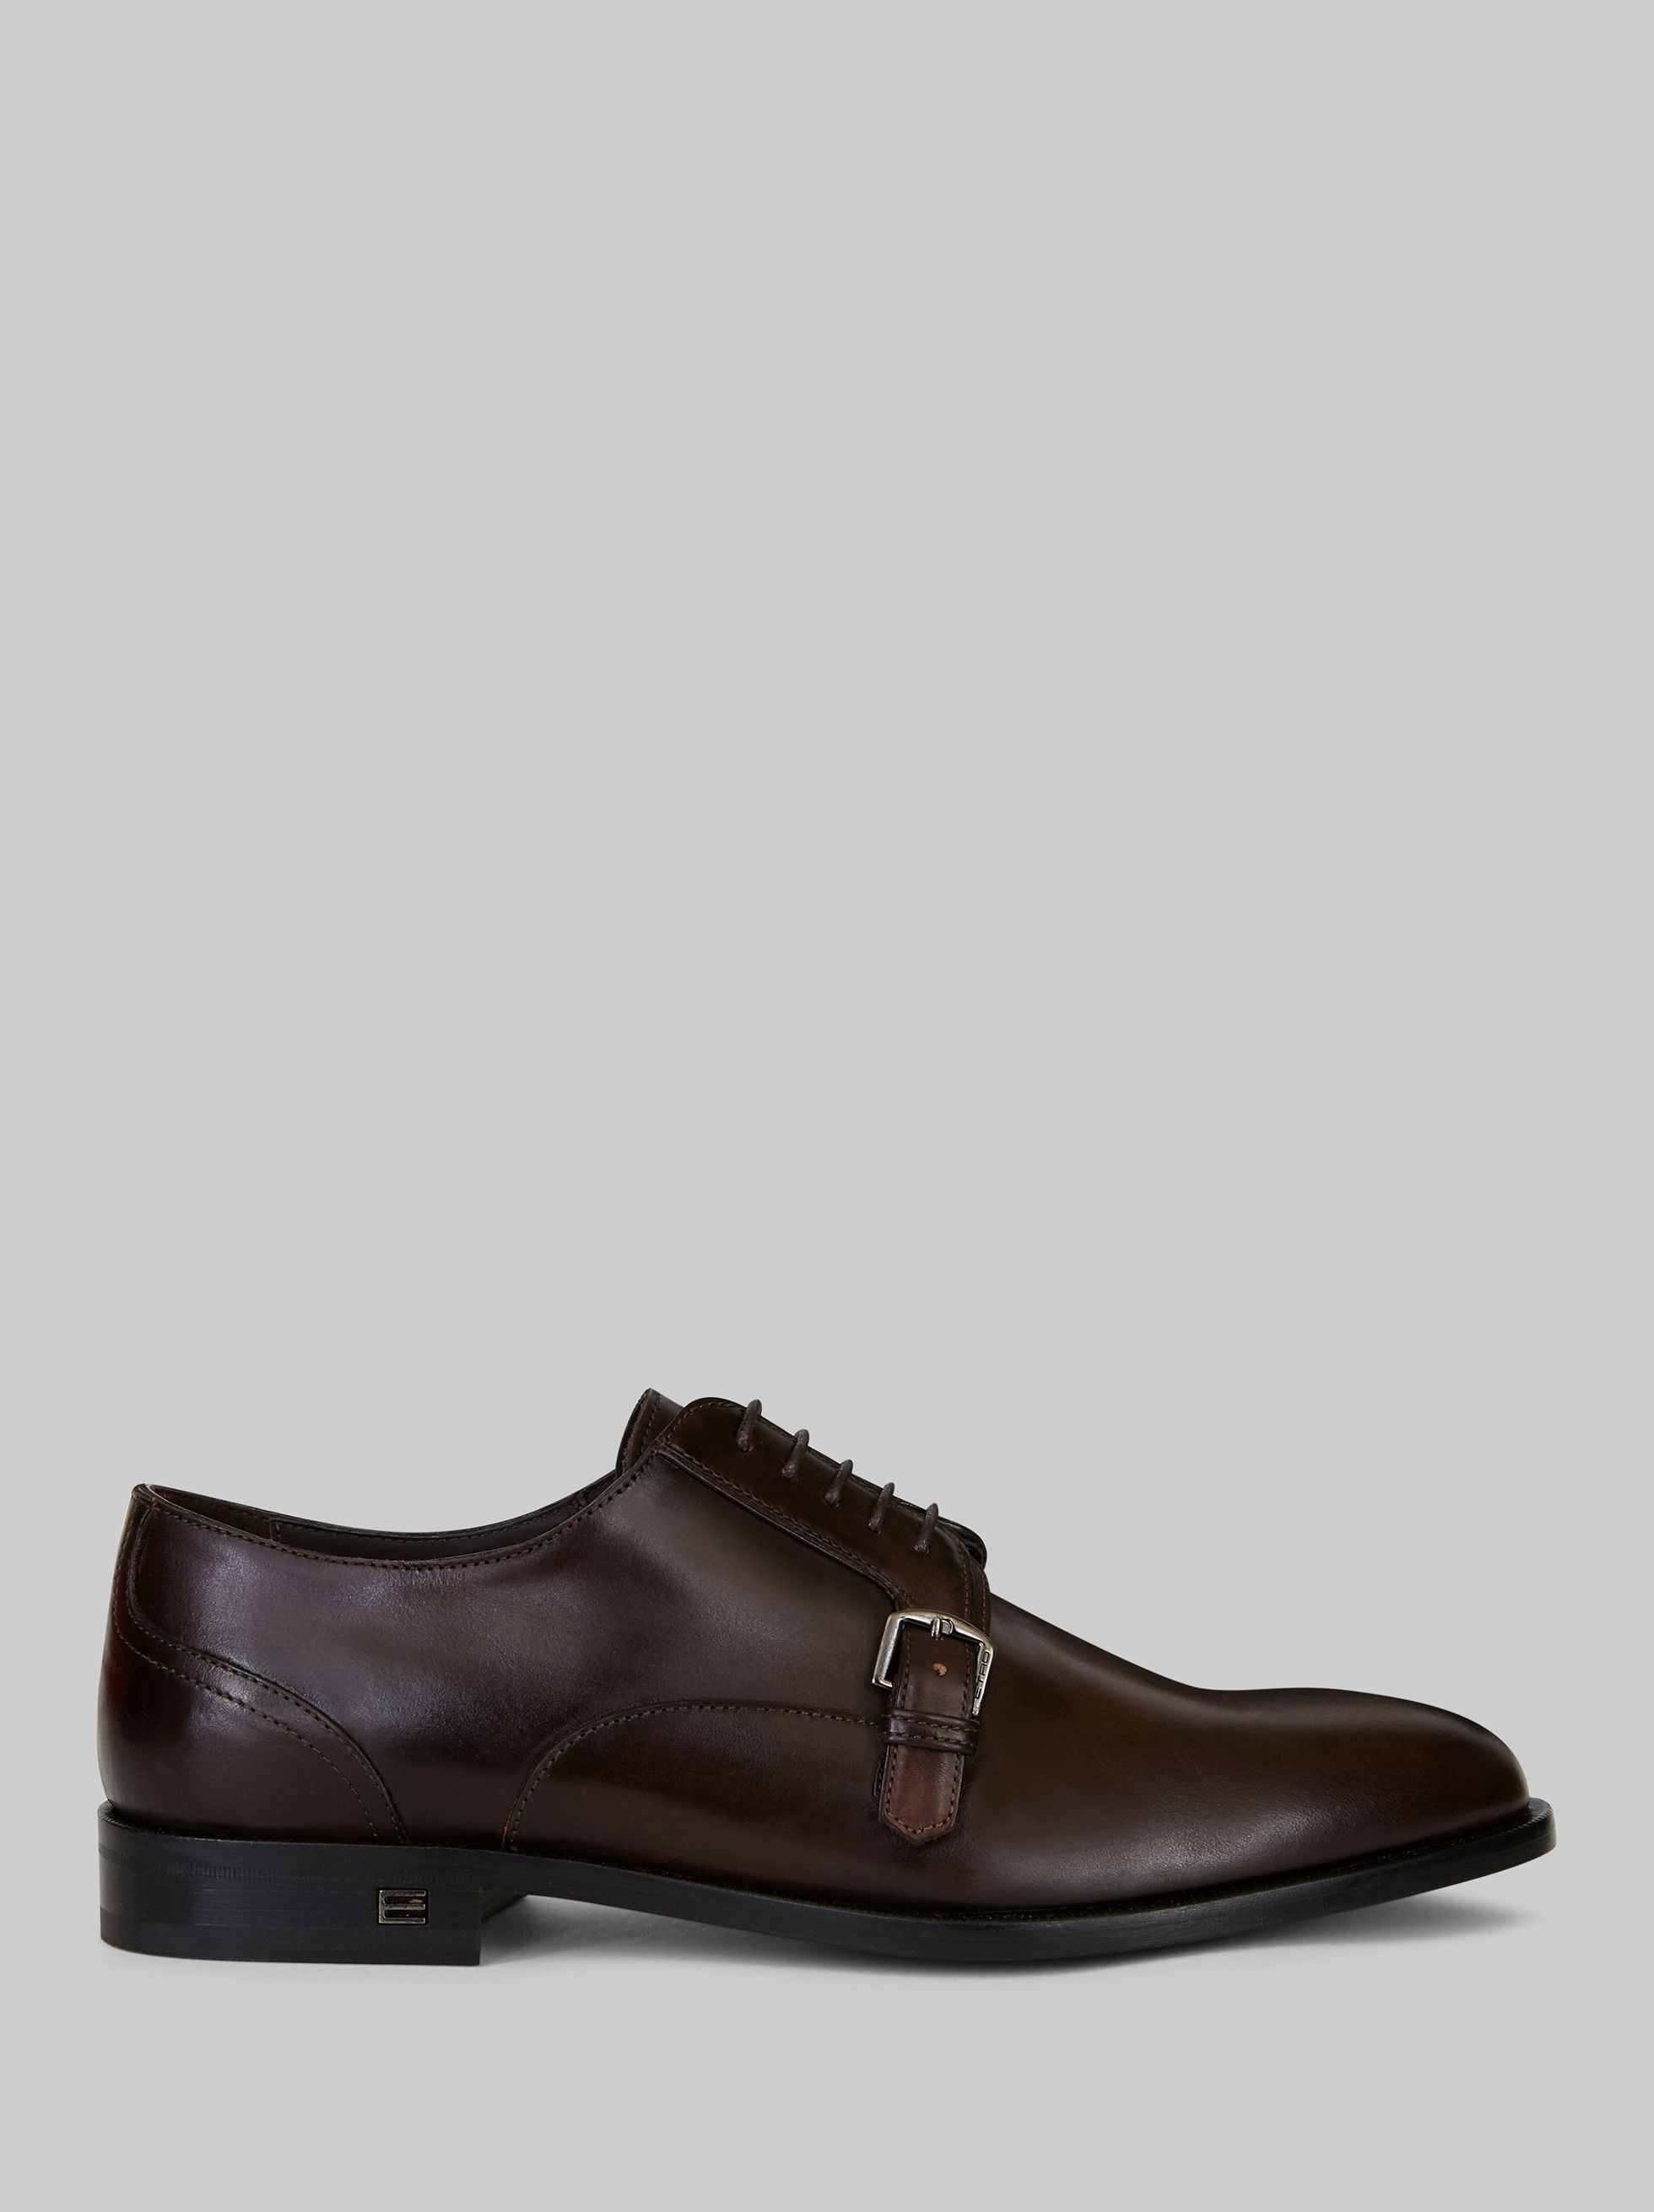 LEATHER LACE-UP SHOES WITH BUCKLE